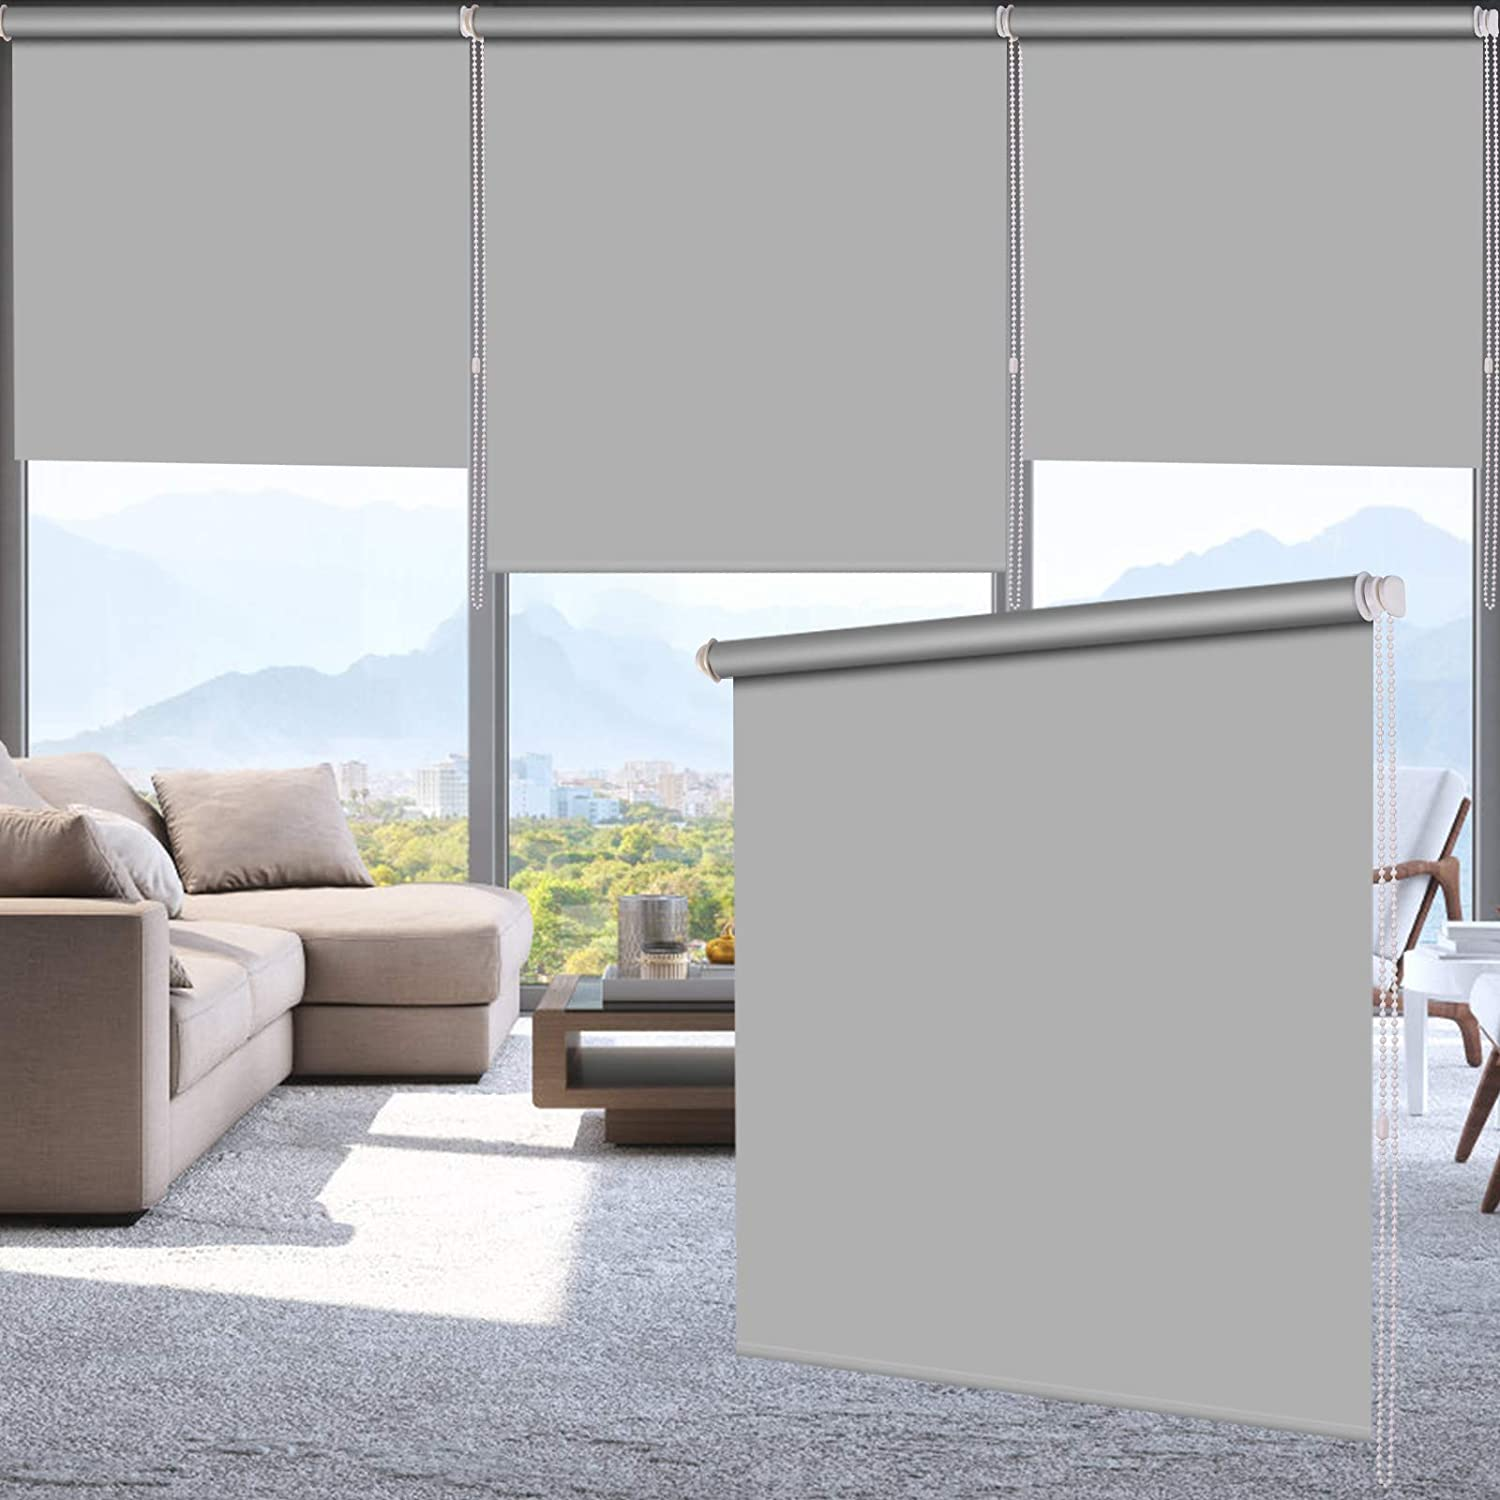 "LUCKUP 100% Blackout Waterproof Fabric Window Roller Shades Blind, Thermal Insulated,UV Protection,for Bedrooms,Living Room,Bathroom,The Office, Easy to Install 34"" W x 79"" L(Grey)"